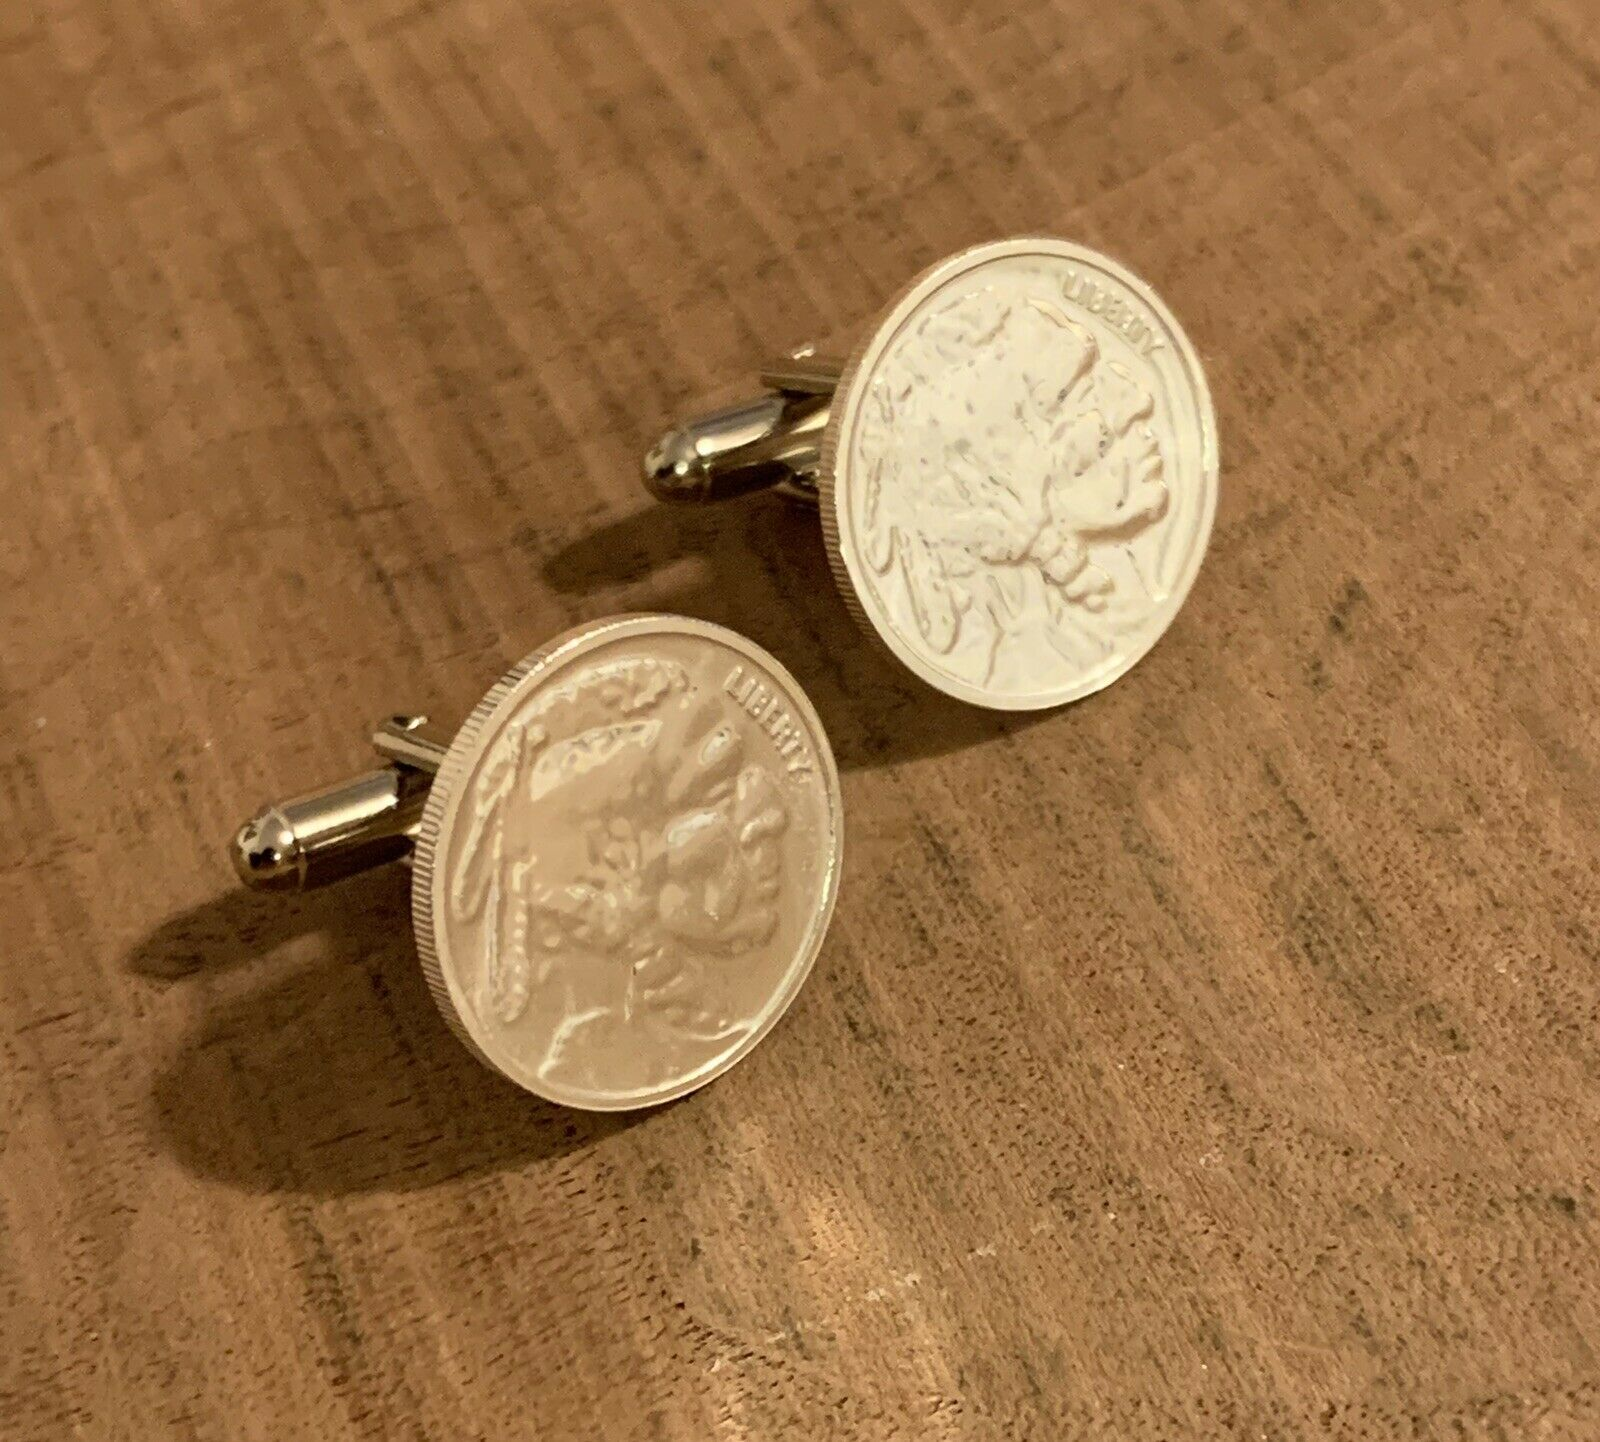 Buffalo Indian Head 1 10 Oz Silver Art Round Coin Jewelry Cuff Links Handmade Coin Jewelry Ideas Of Coin Jewe Coin Jewelry Handmade Coin Jewelry Silver Art